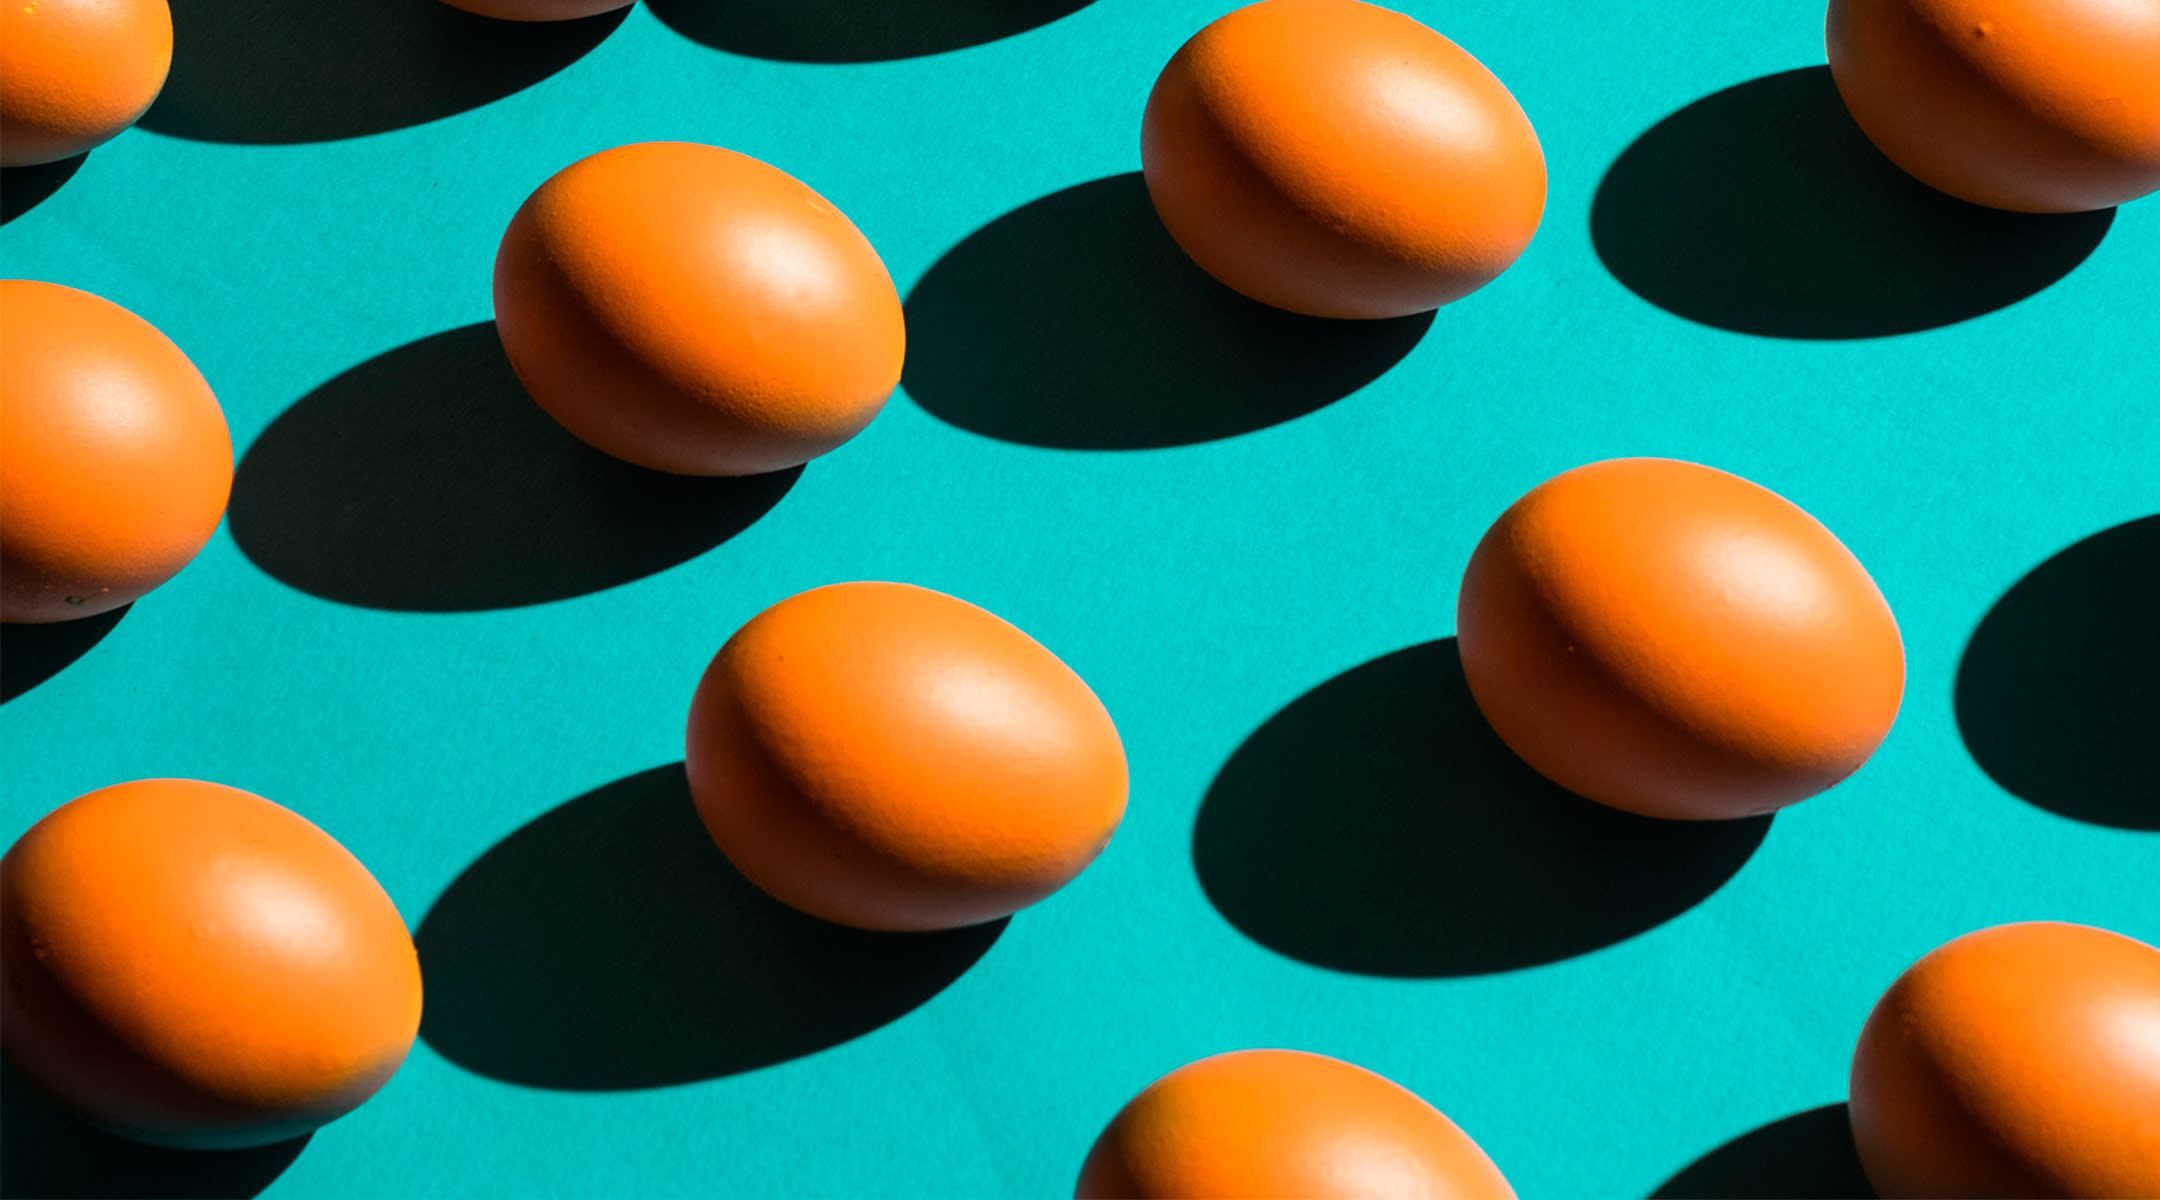 eggs arranged and photographed graphically as a pattern